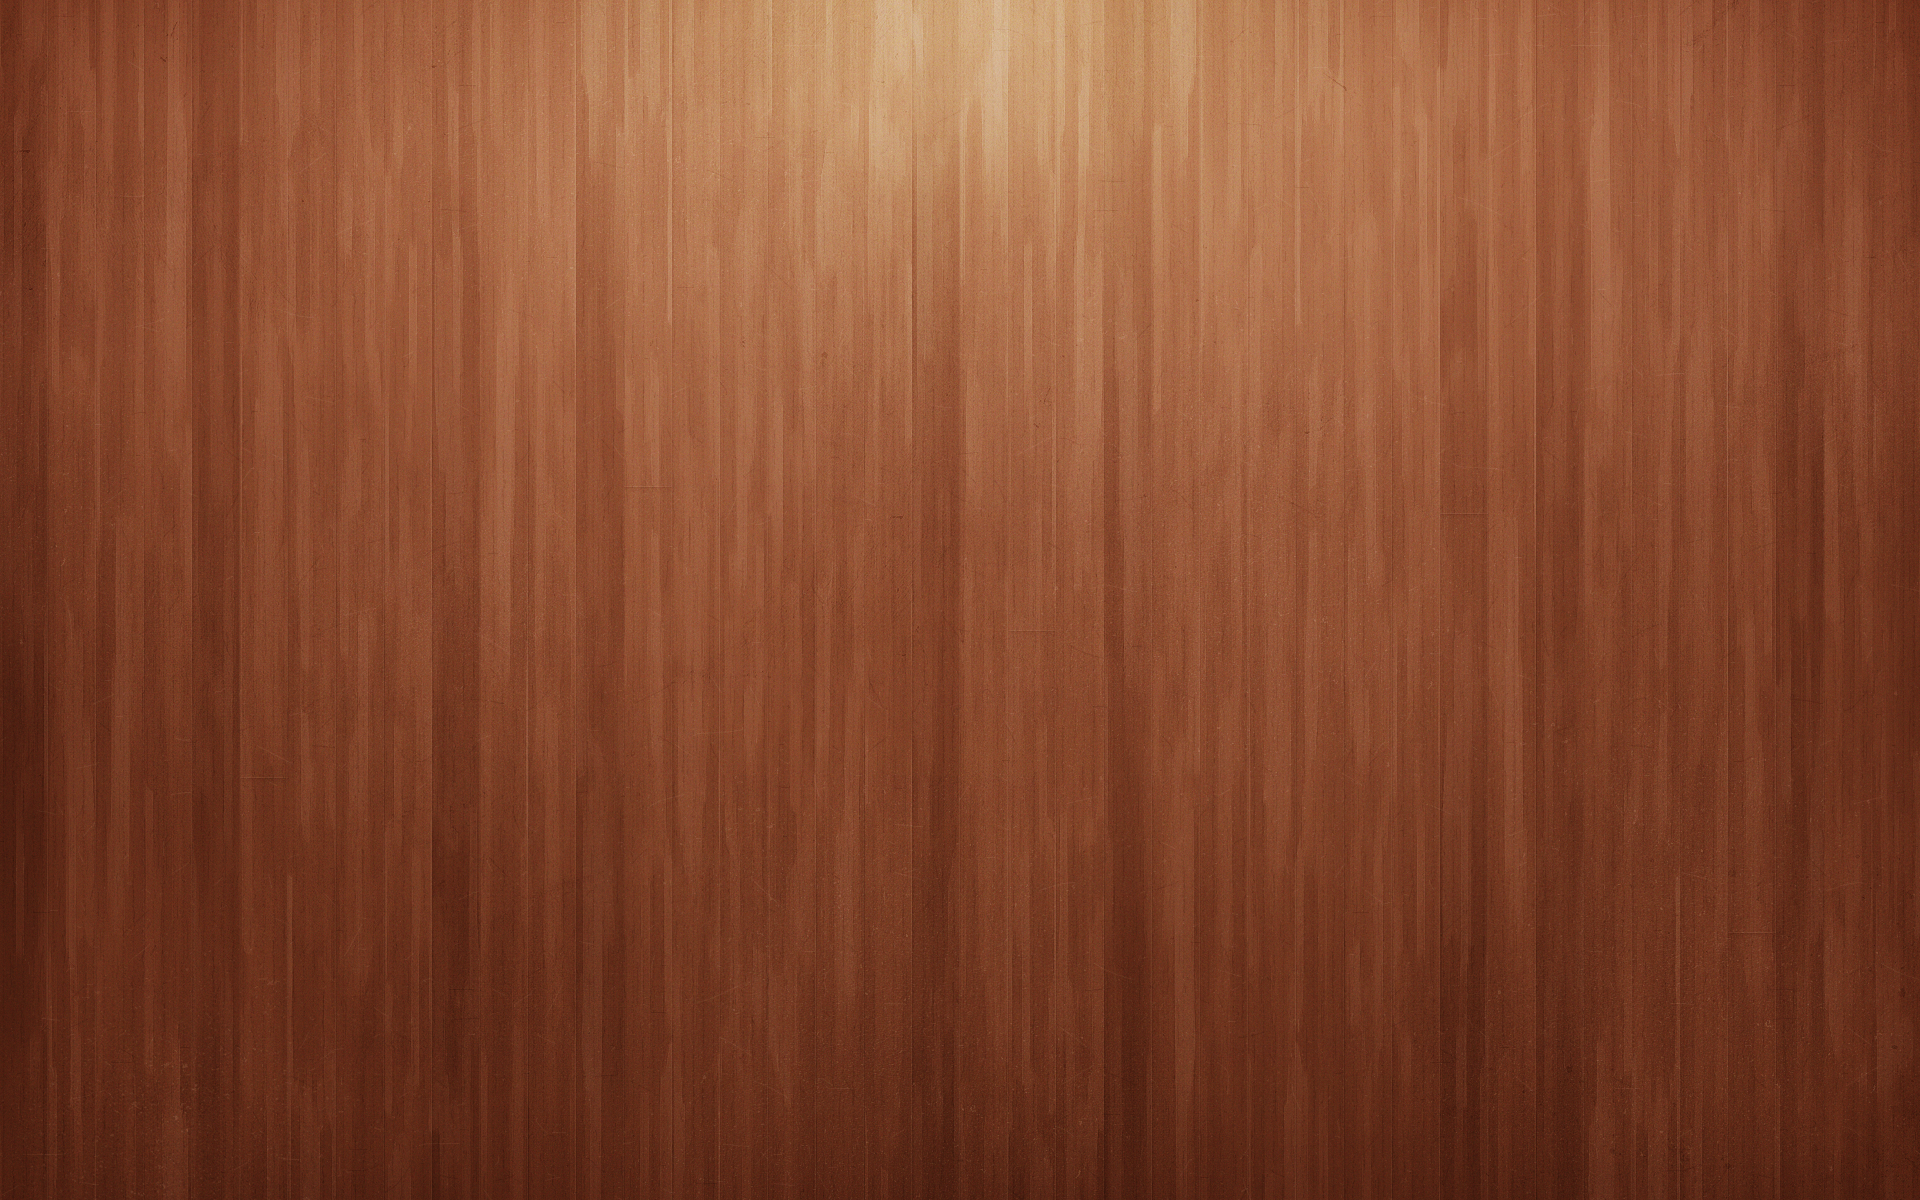 Wood background wallpaper 343273 for Wood wallpaper for walls